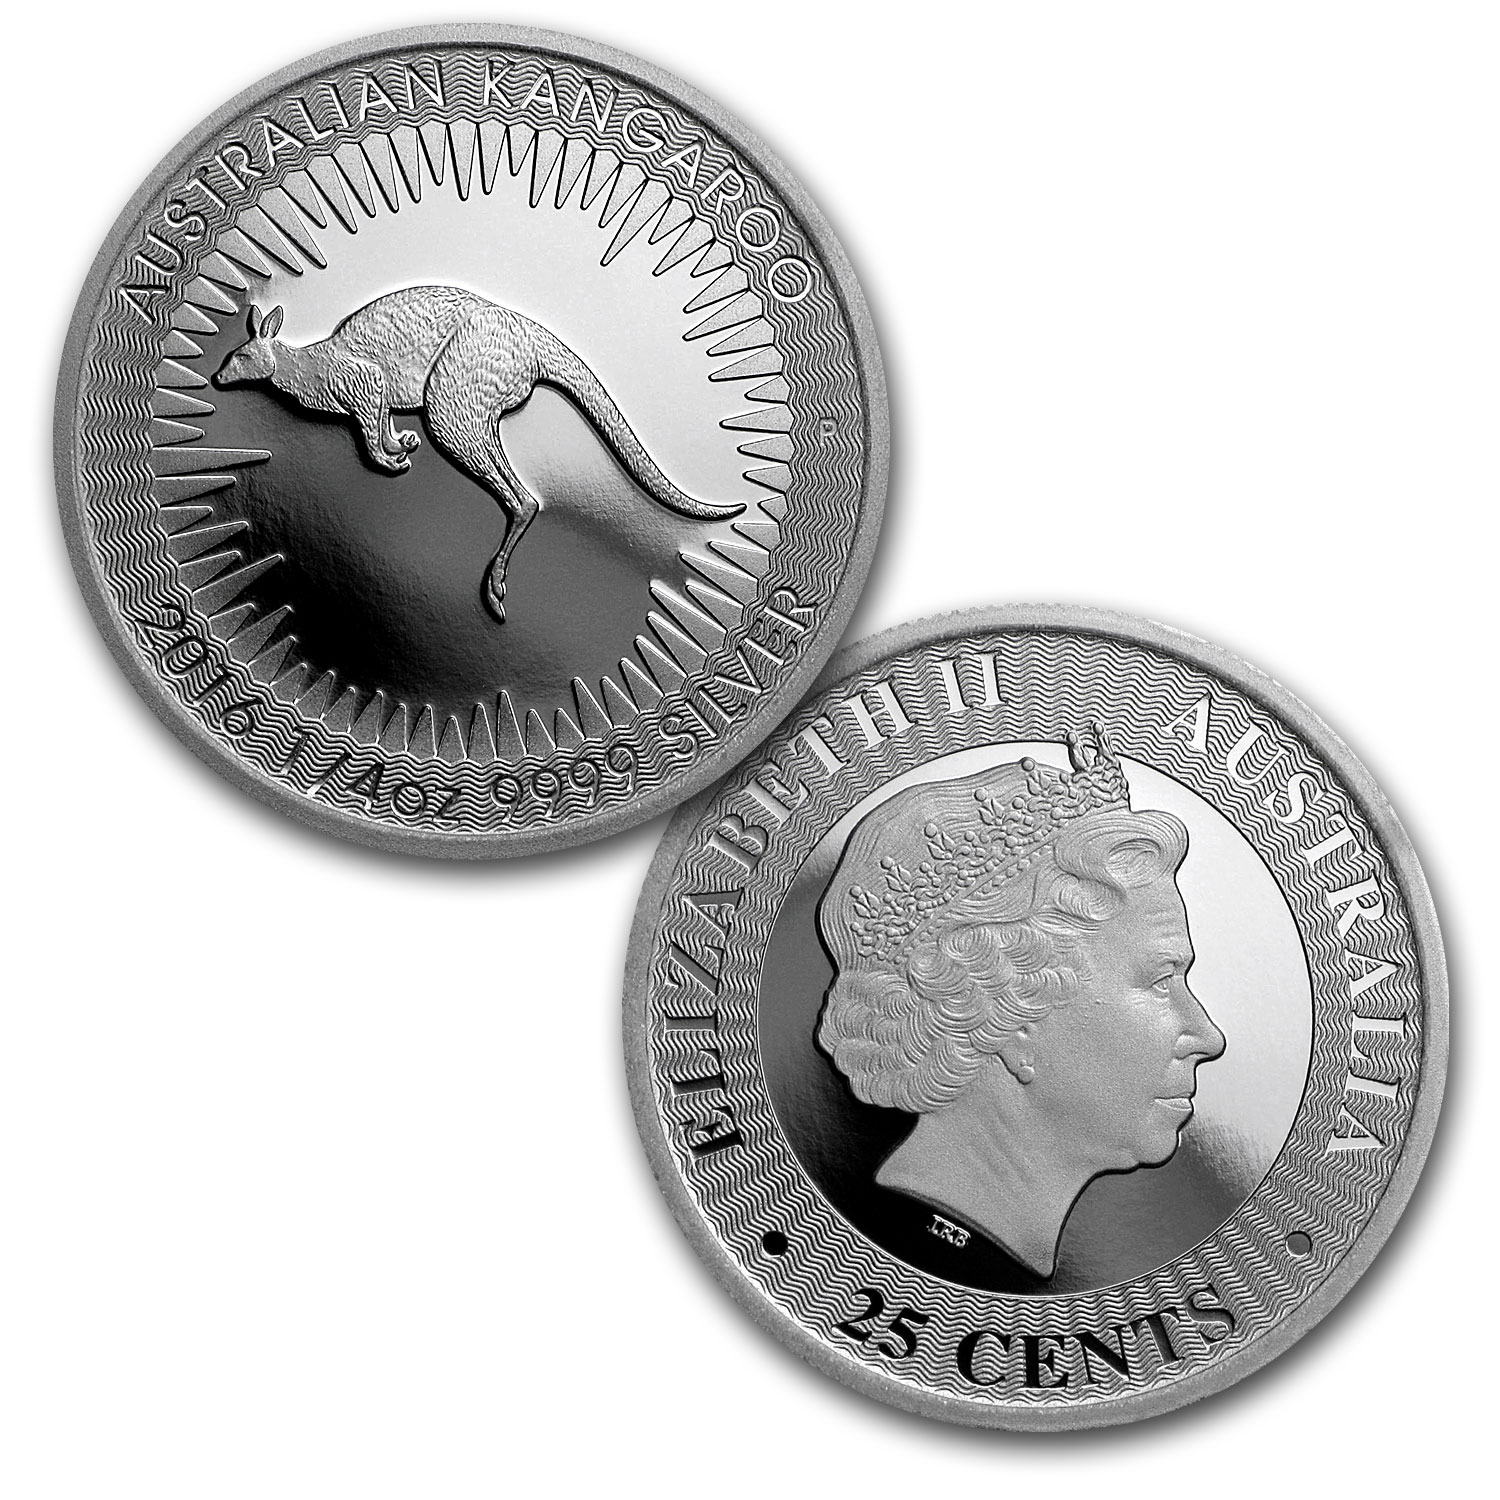 2016 Australia 4-Coin Proof Silver Kangaroo Set